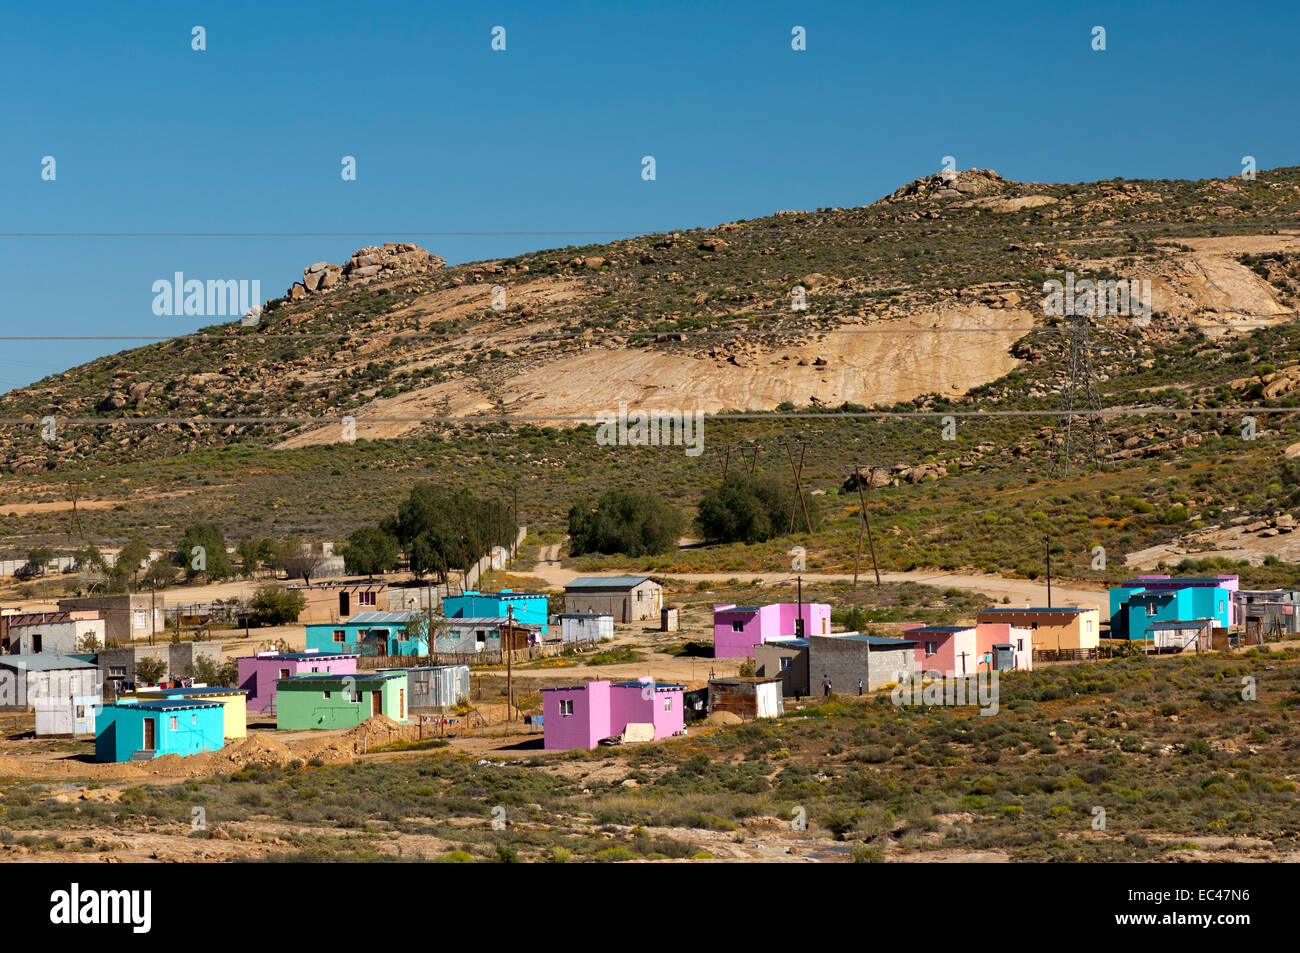 Residential neighbourhood of black South Africans at the periphery of Springbok, Northern Cape province - Stock Image